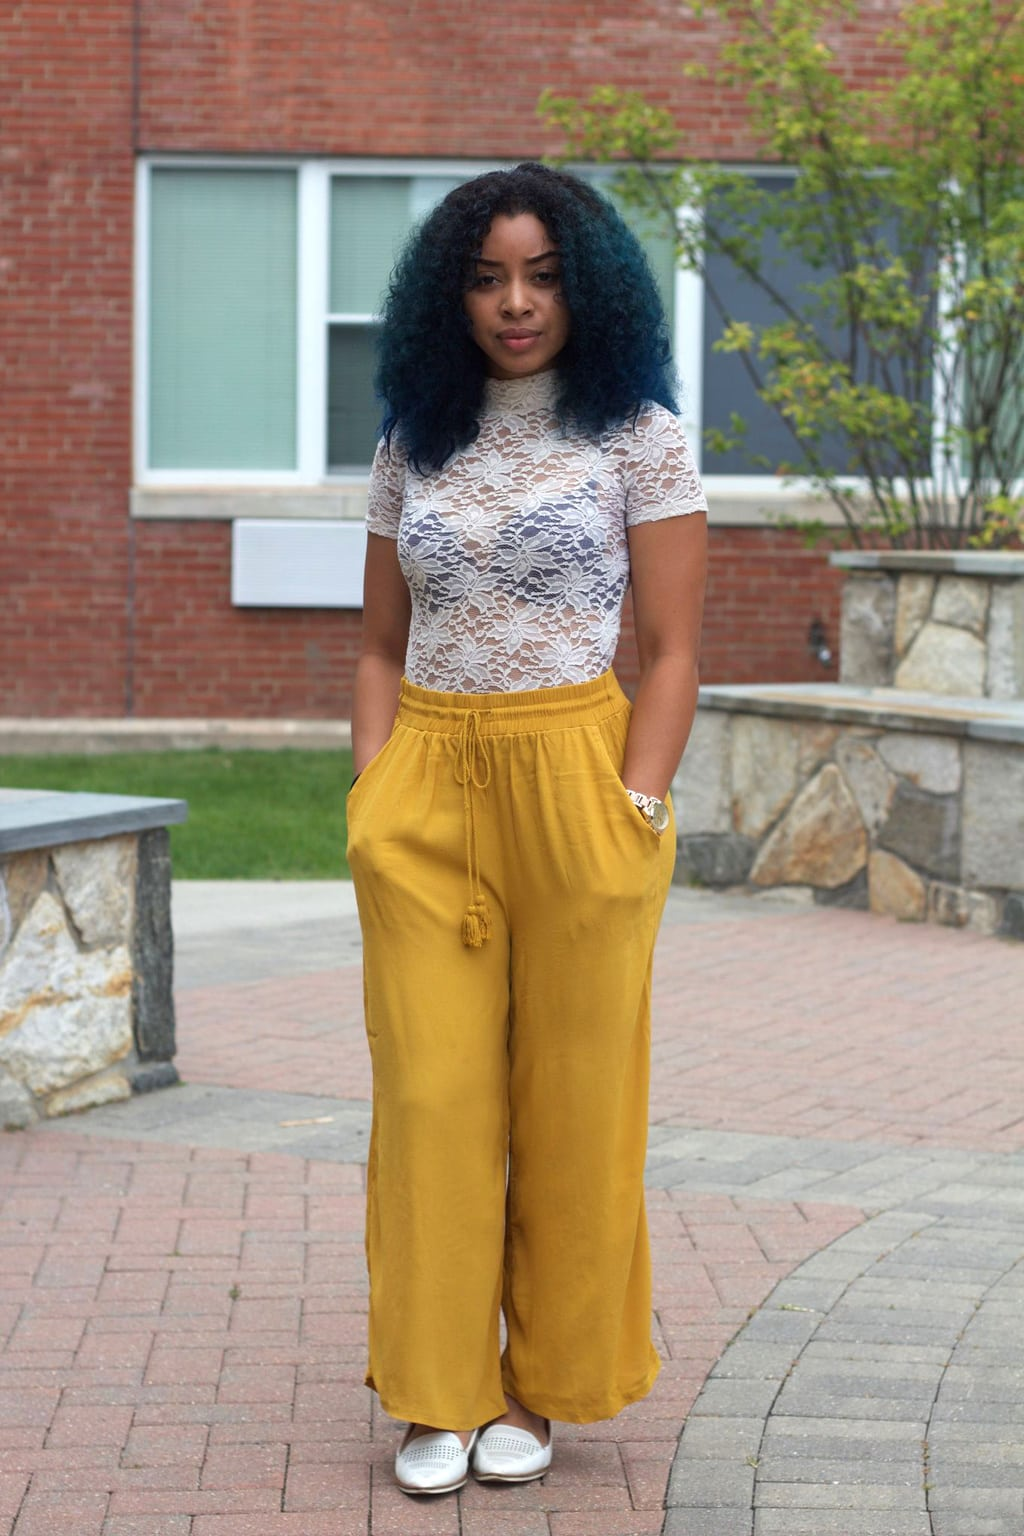 Best lace bodysuit outfit ever: Bold yellow drawstring palazzo pants on University of Bridgeport student Carol, paired with a short sleeve mock neck see-through lace body suit and bright teal hair.